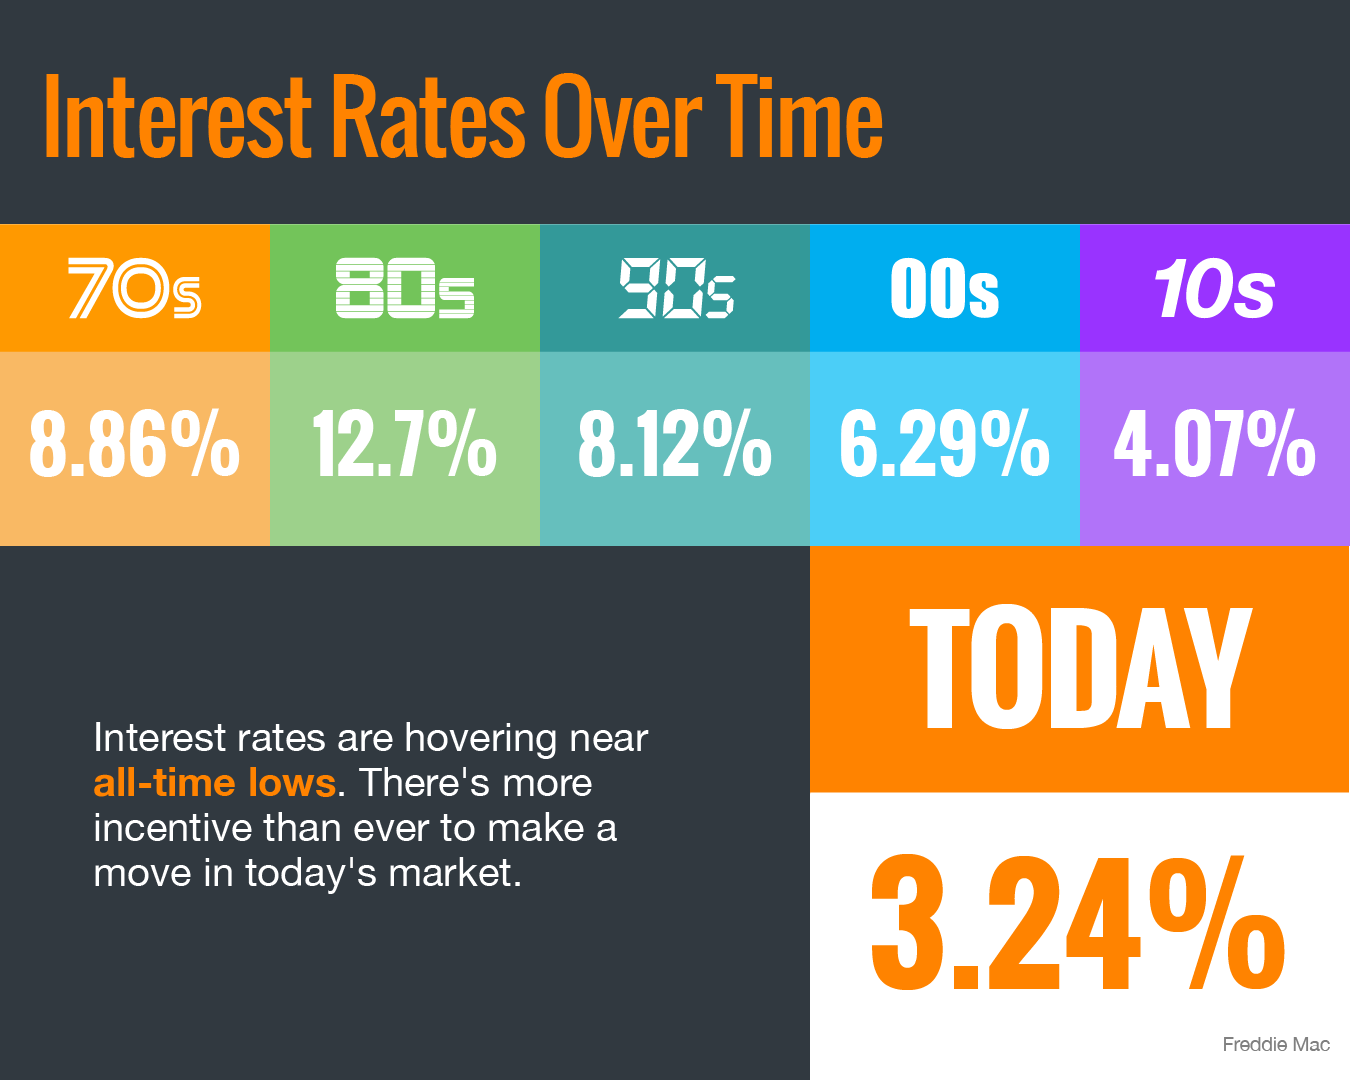 Interest Rates Hover Near Historic All-Time Lows [INFOGRAPHIC] | Bridge Builders